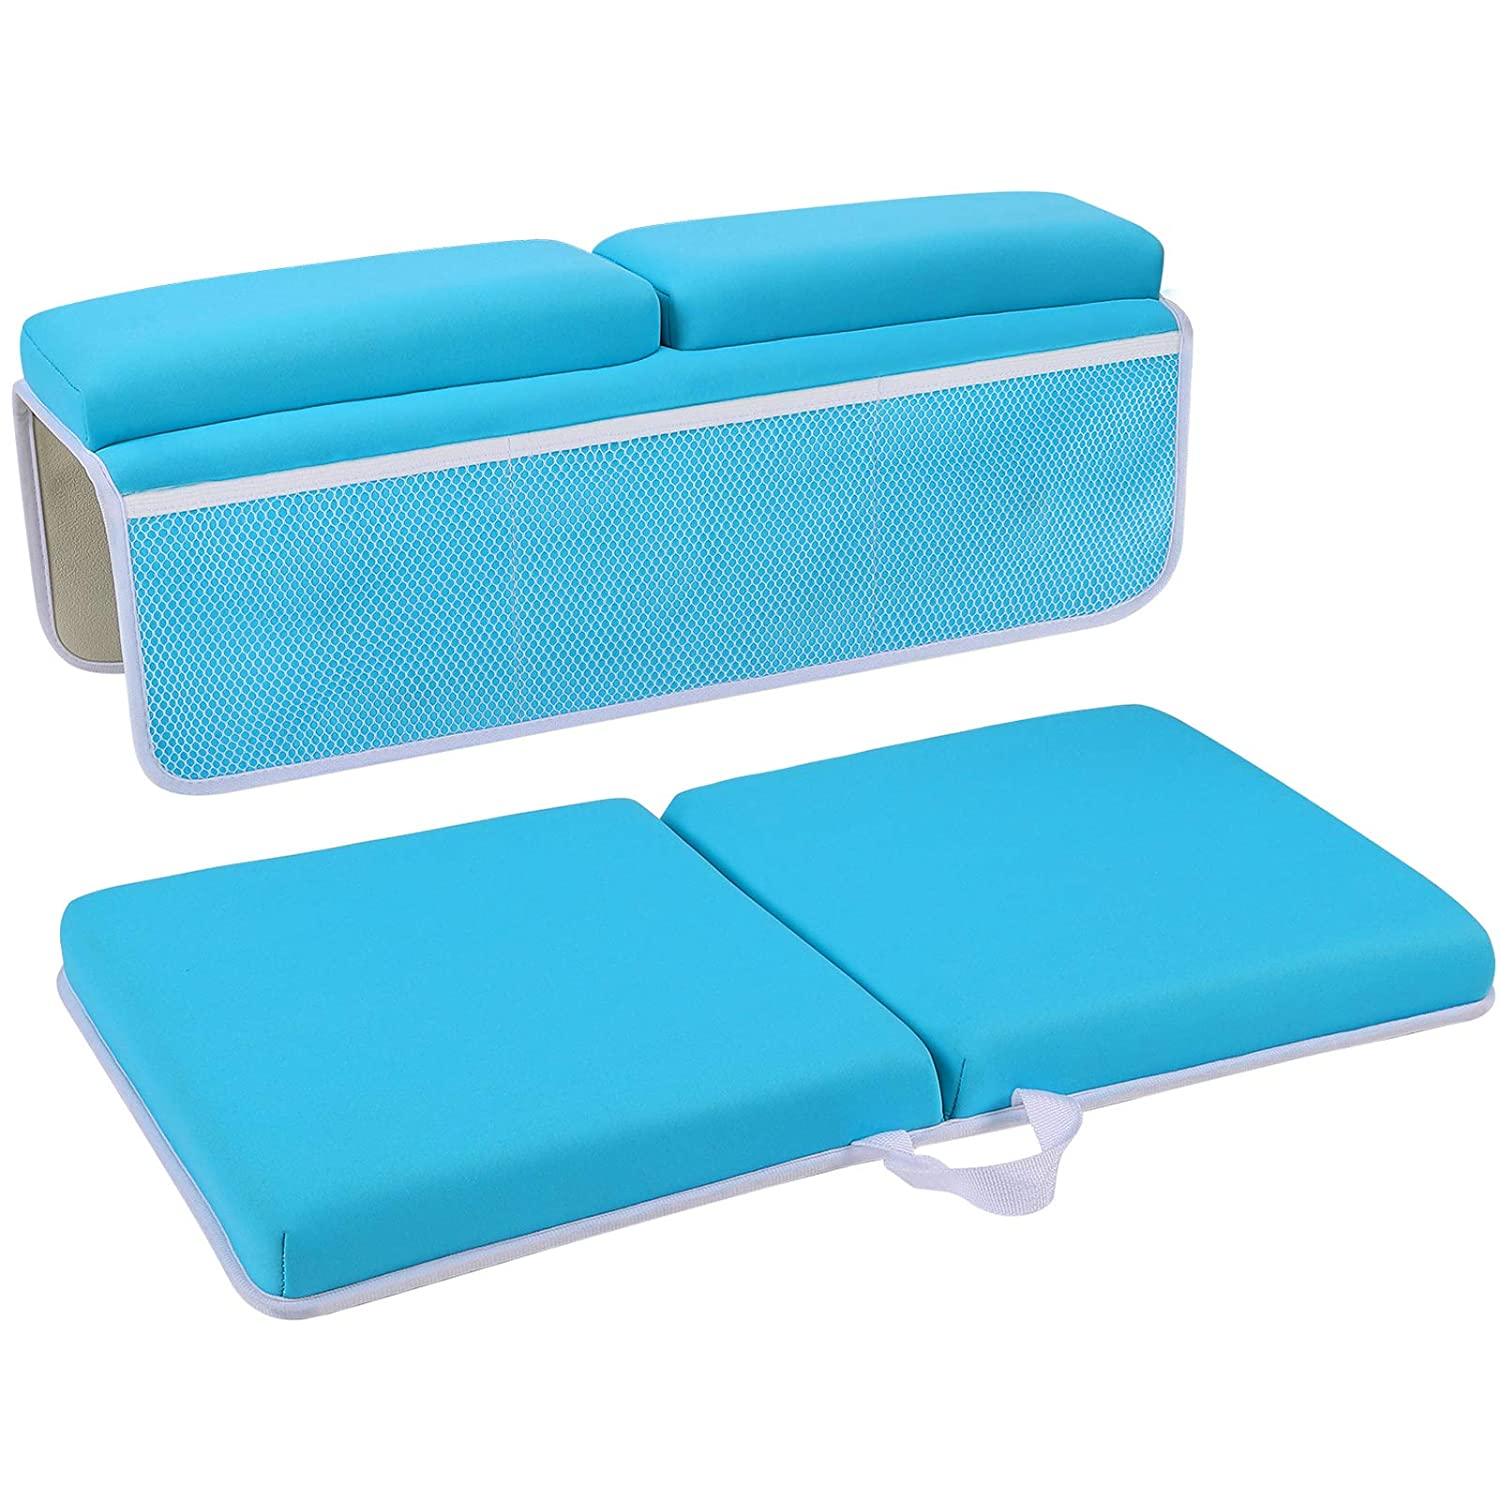 JJGoo Bath Kneeler with Elbow Rest Pad Set, 1.5 inch Thick Kneeling Pad and Elbow Support for Knee & Arm Support, Bathtub Kneeling Mat for Happy Baby Bathing Time(Blue)…